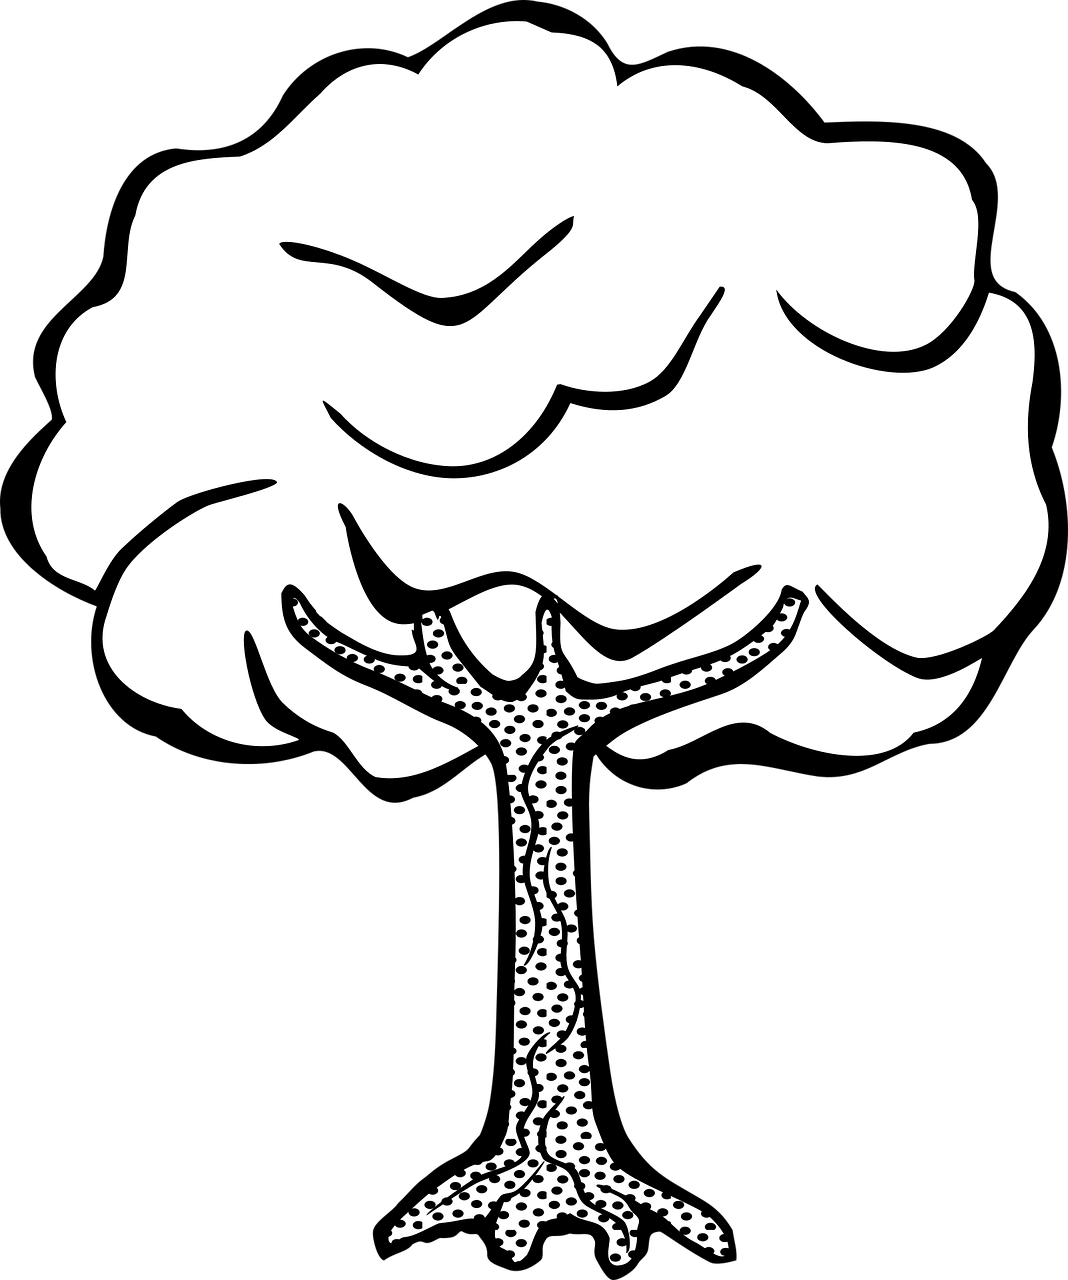 1068x1280 Free Printable Tree Coloring Pages For Kids 14 Pics